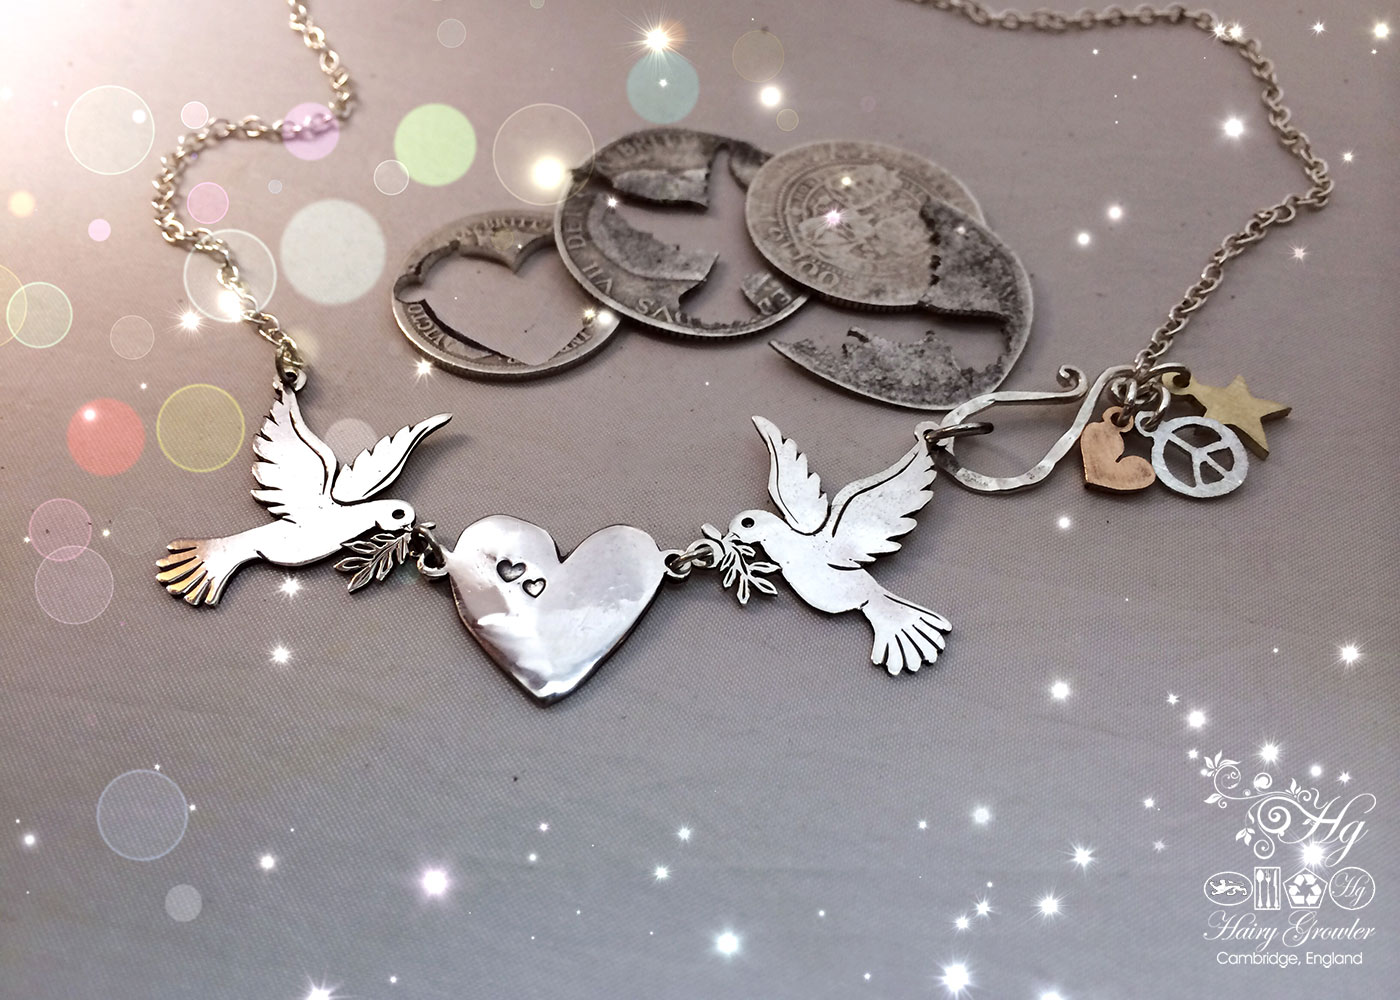 Handcrafted and recycled sterling silver coins 'love doves' necklace